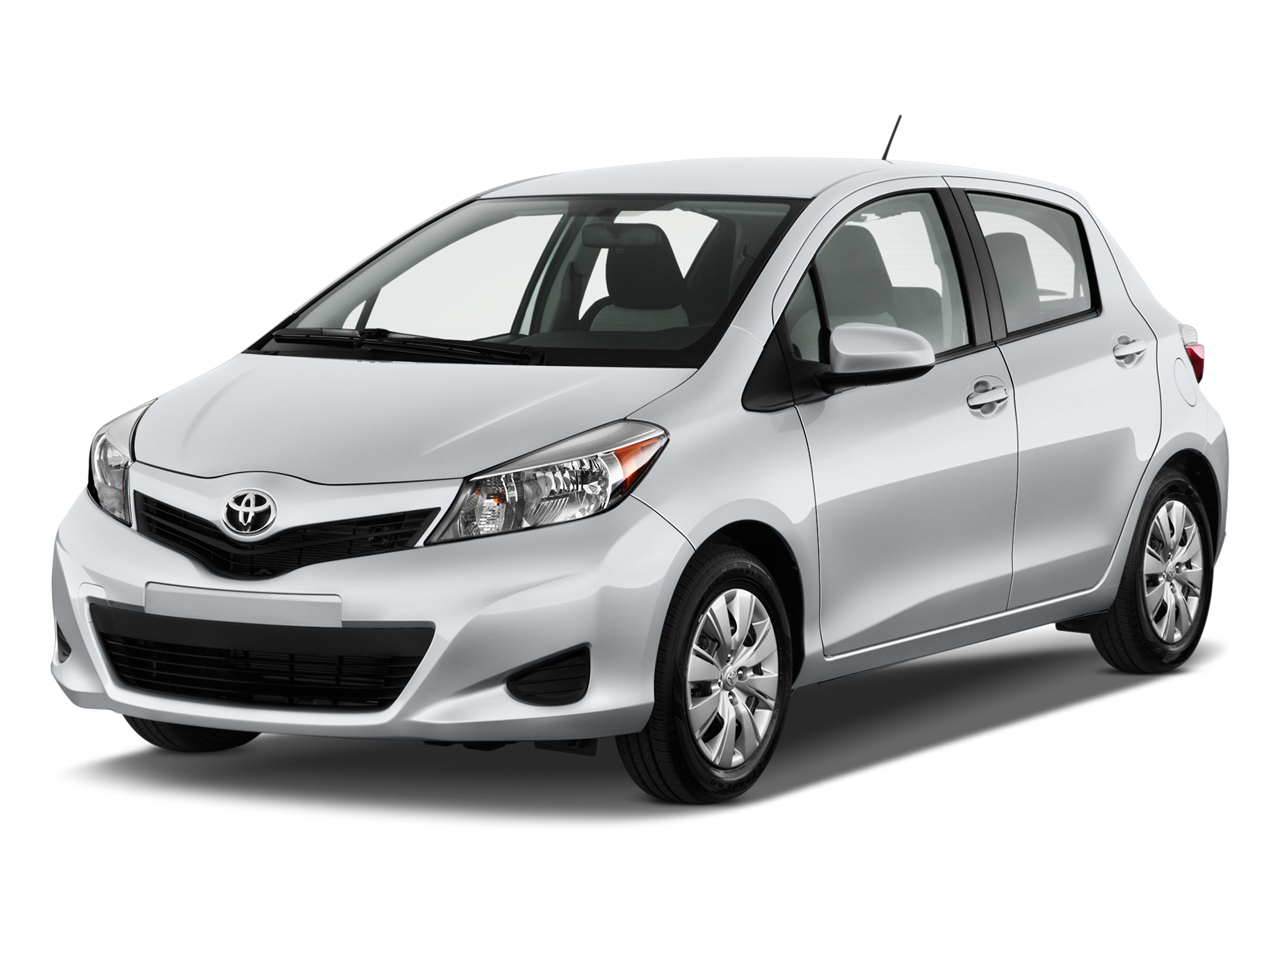 Prius For Sale Atlanta >> 2012 Toyota Yaris Review, Ratings, Specs, Prices, and Photos - The Car Connection